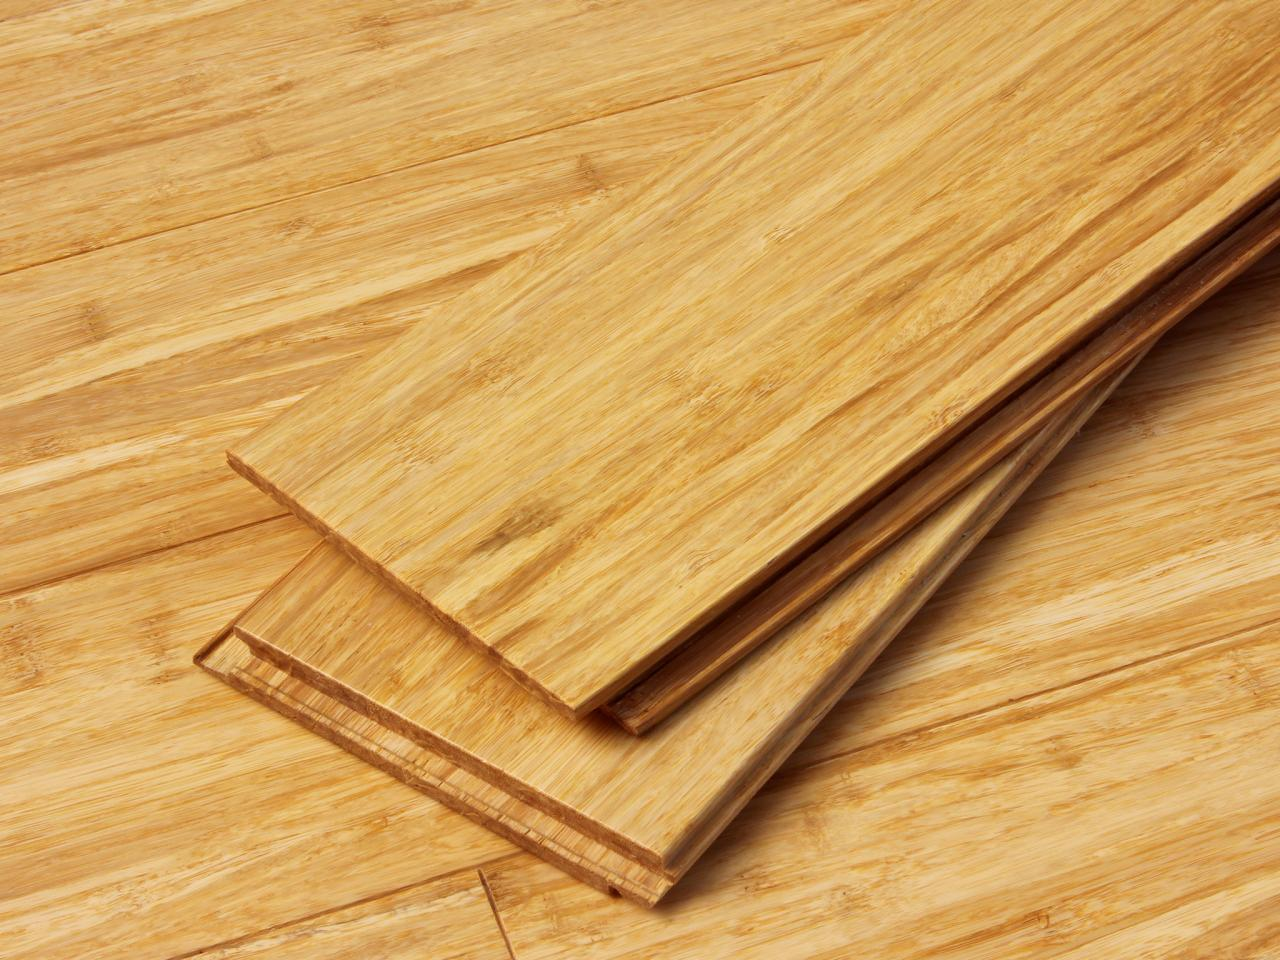 bamboo floor tiles how to install two-tone bamboo flooring ROJZMZR